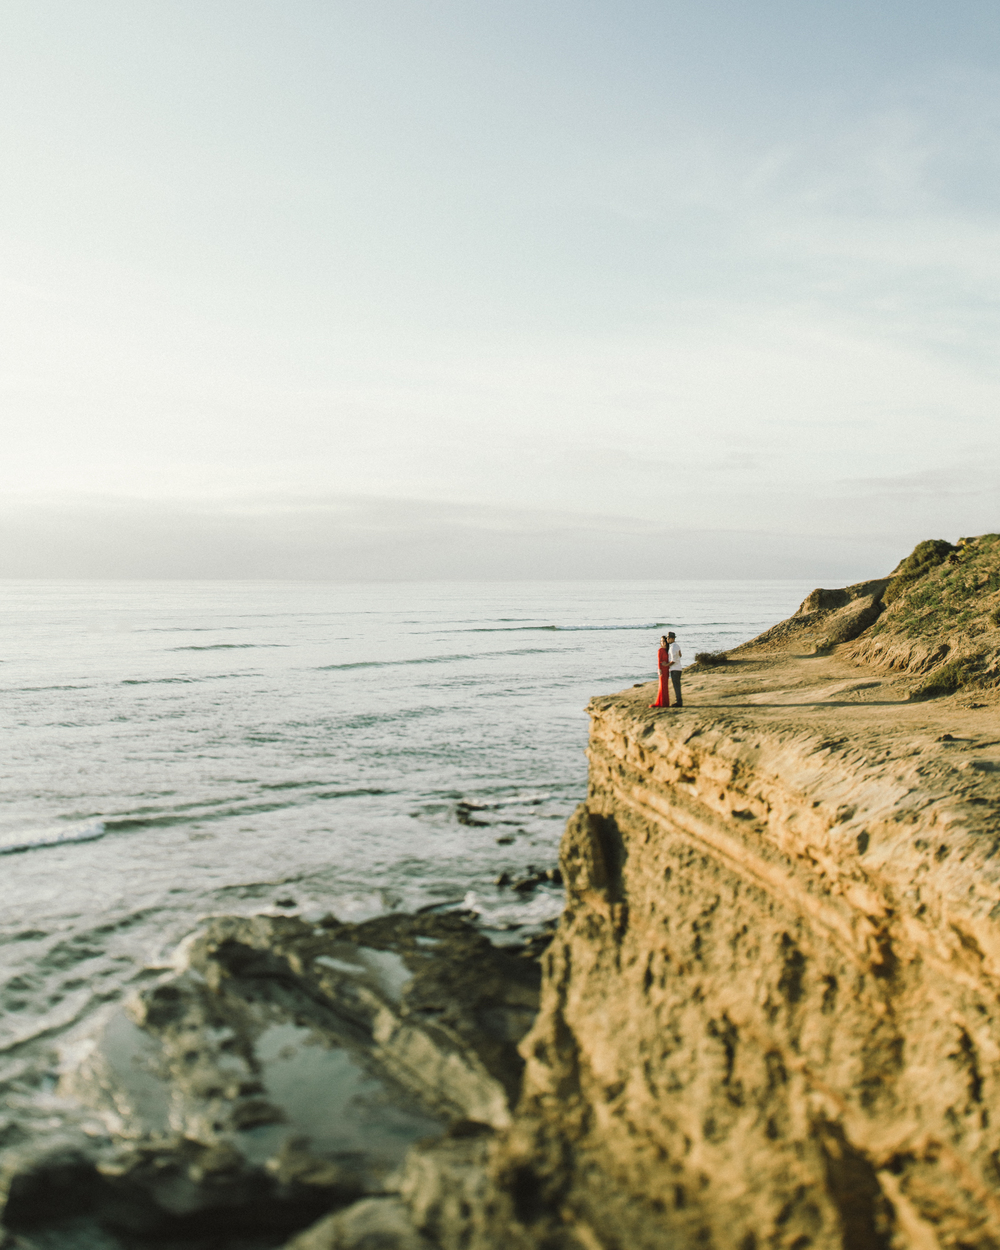 Isaiah & Taylor Photography - Los Angeles - Destination Wedding Photographers - San Diego Sunset Cliffs Beach Adventure Engagement-23.jpg